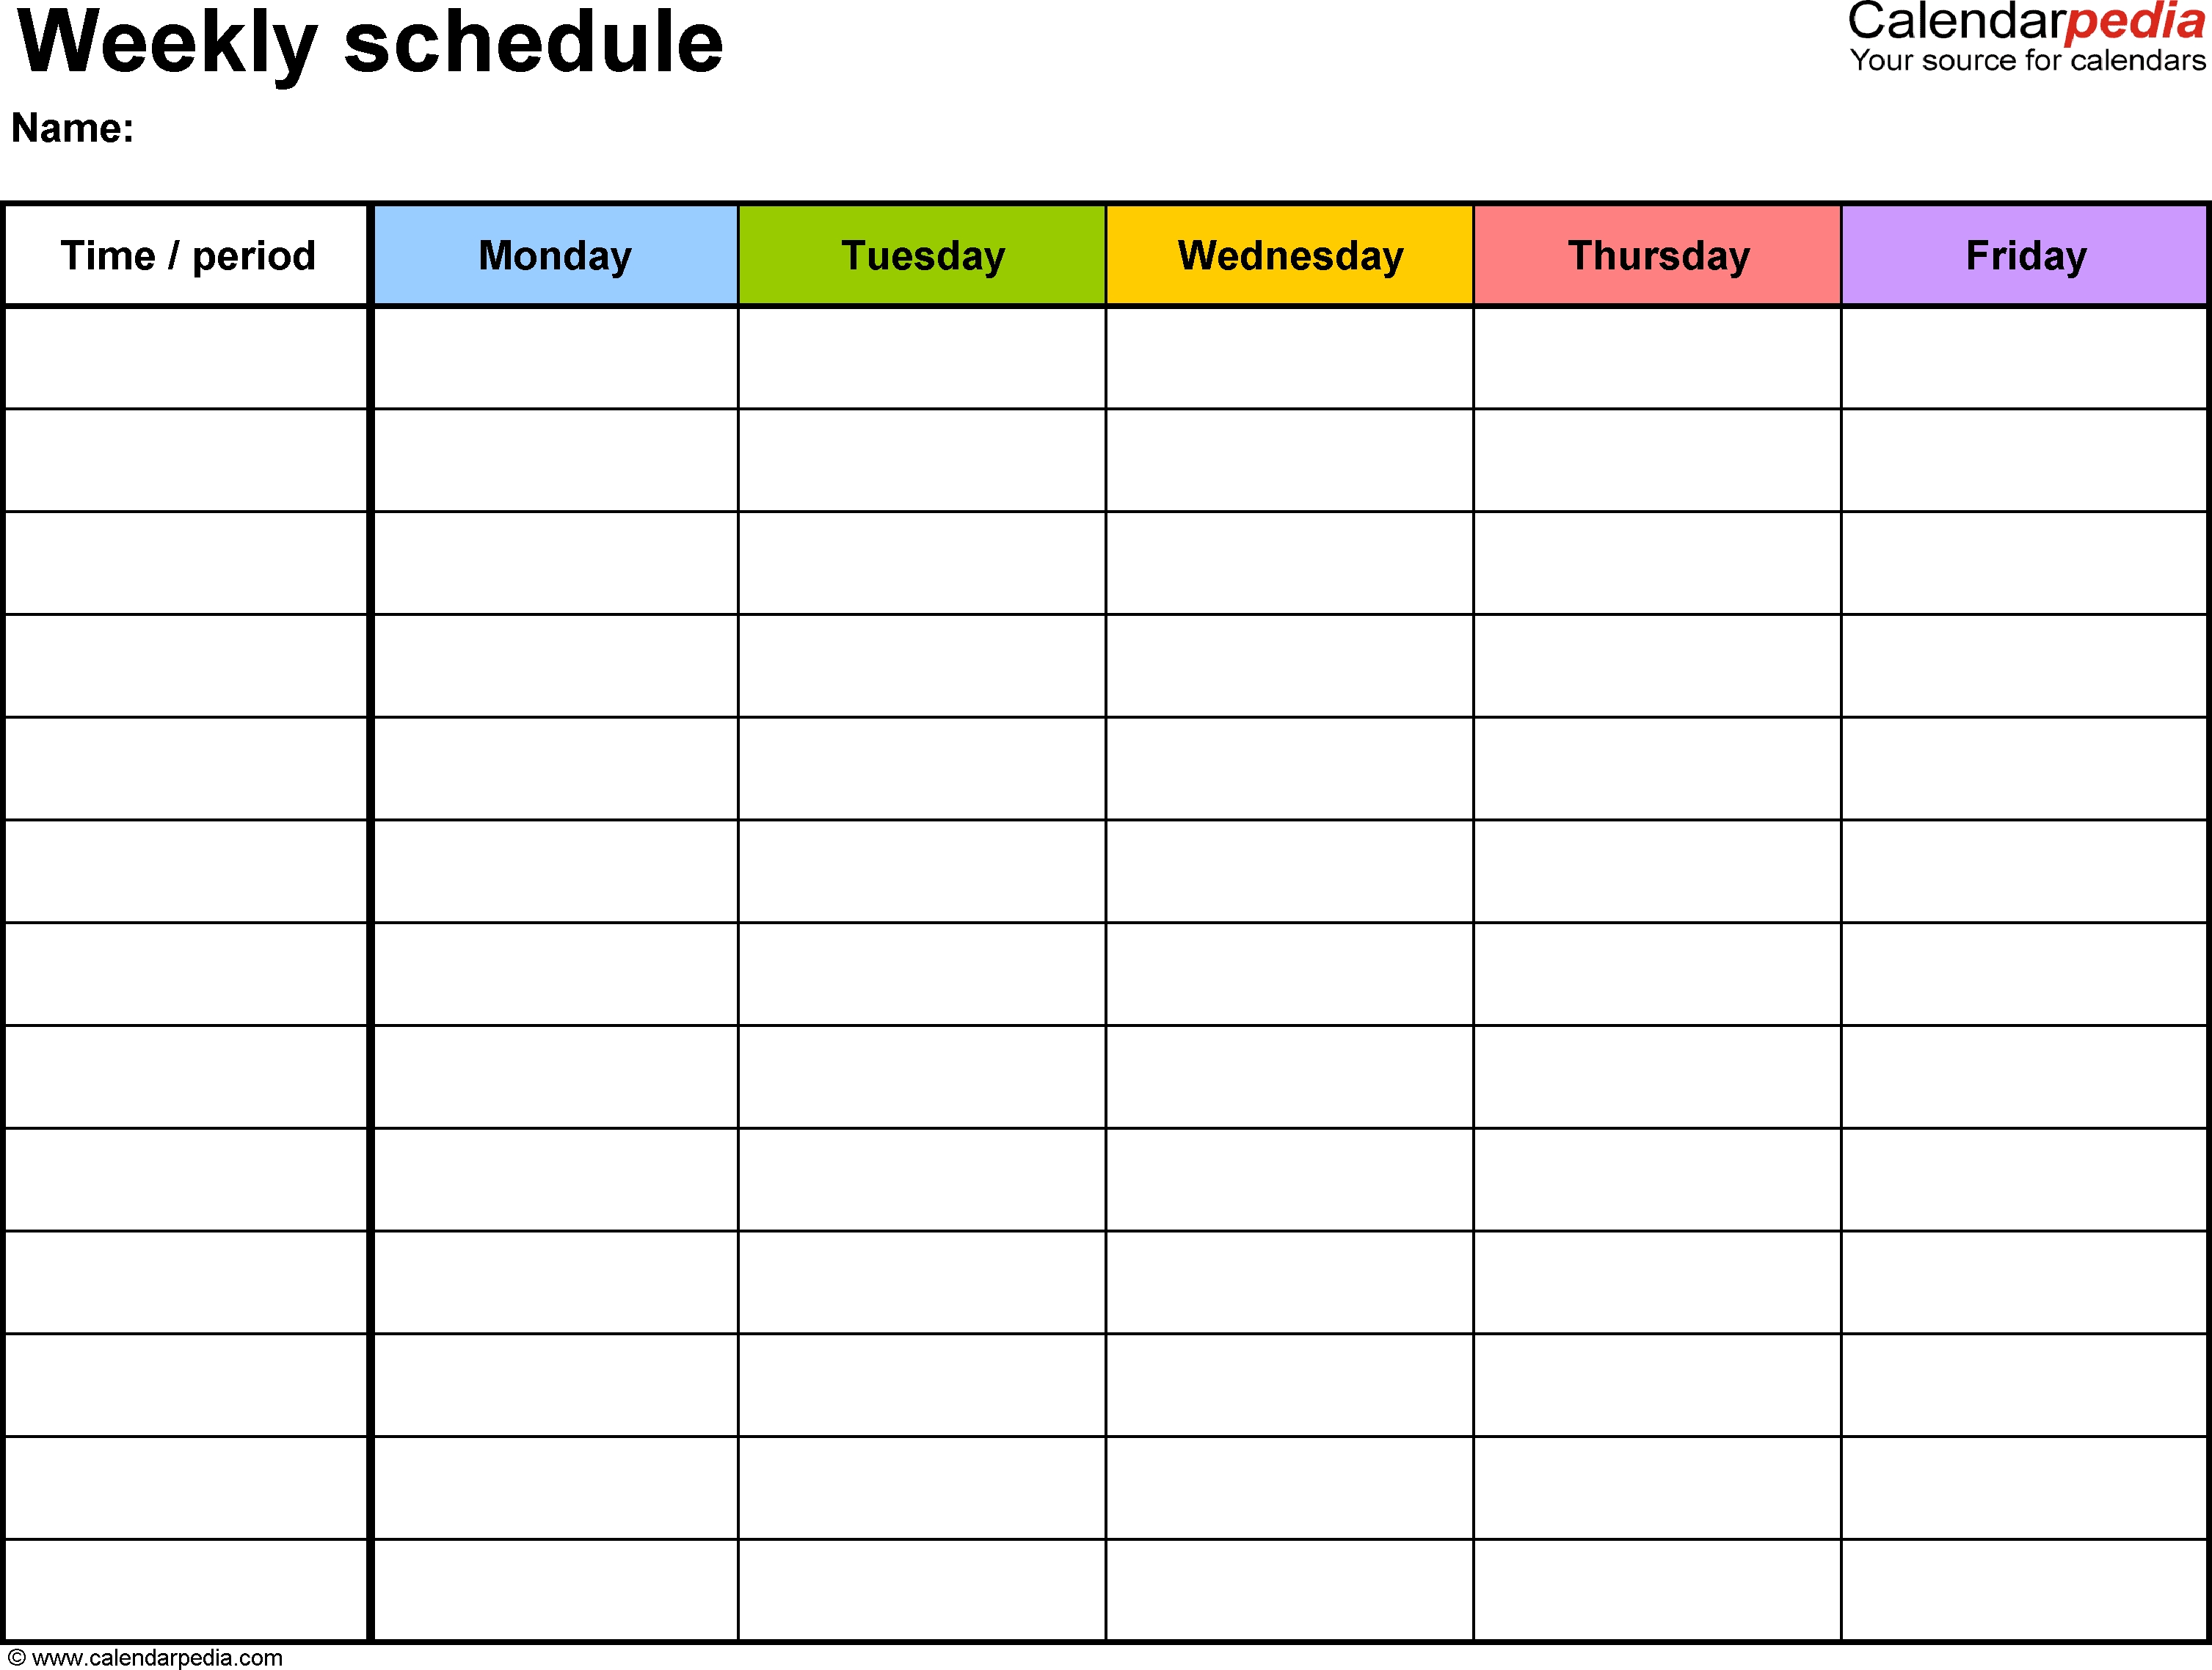 Free Weekly Schedule Templates For Word - 18 Templates in Printable 5 Day Working Week Calendar